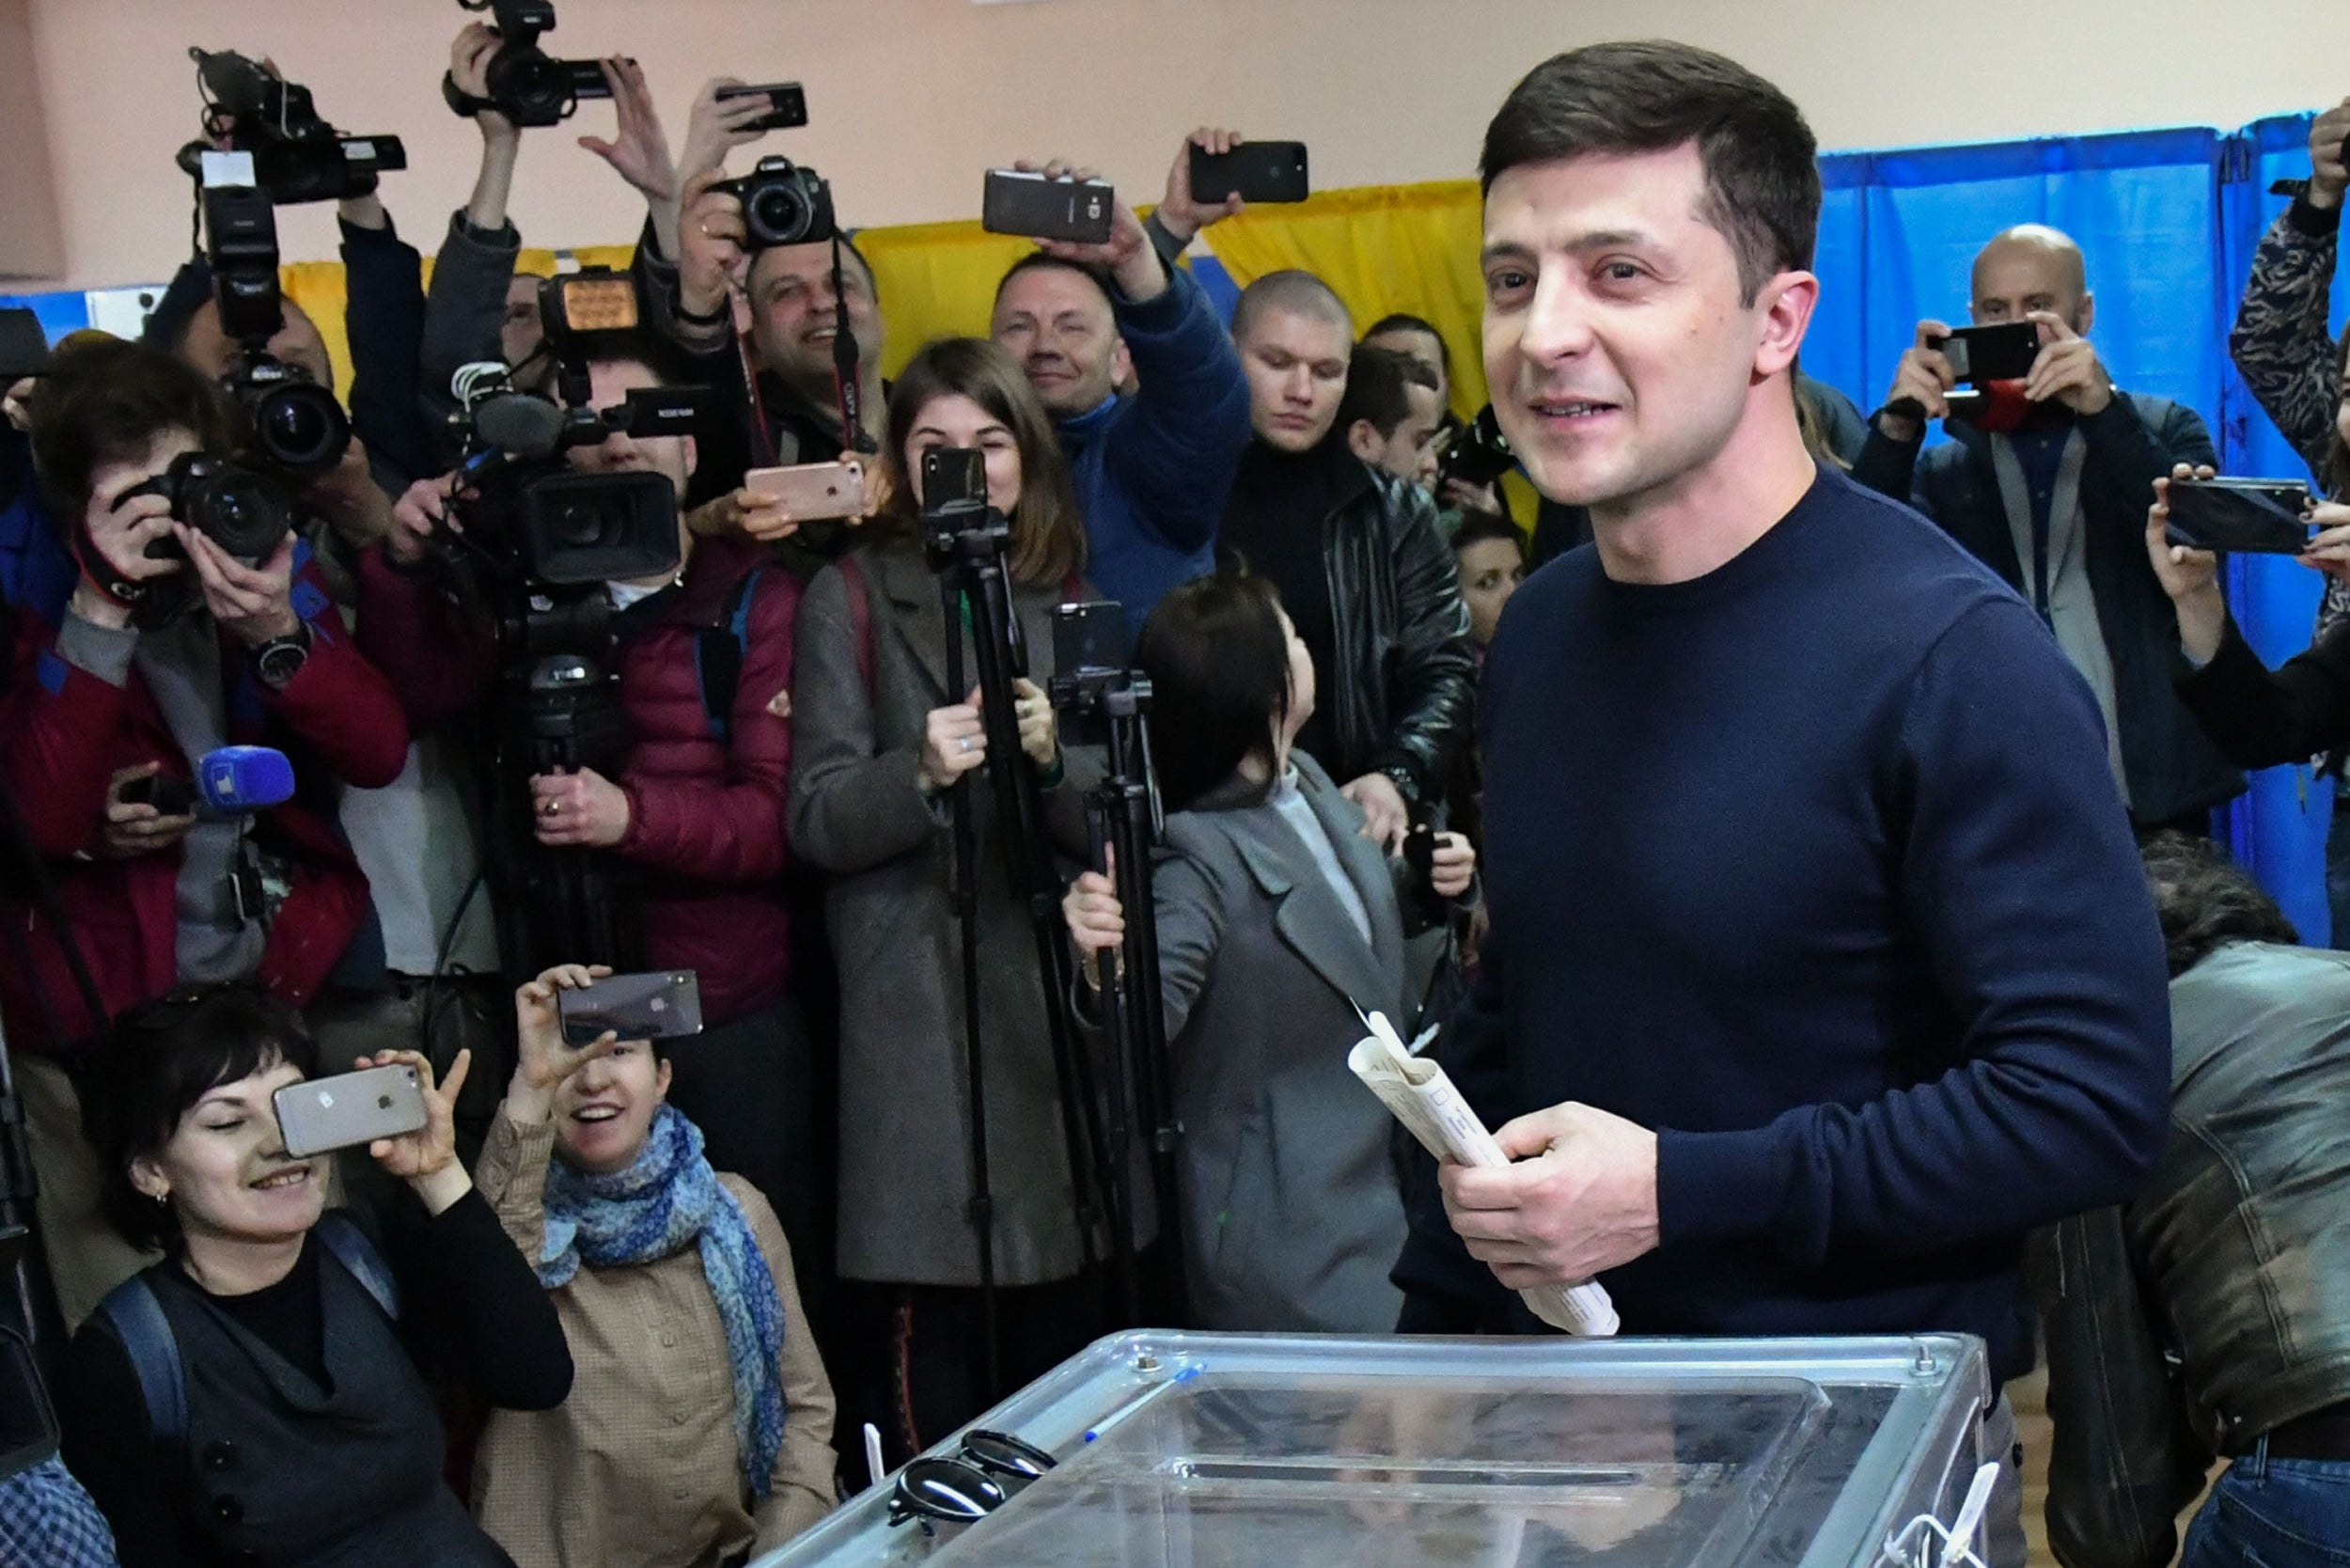 He finds laughter in the tragedy': Comedian Volodymyr Zelensky set